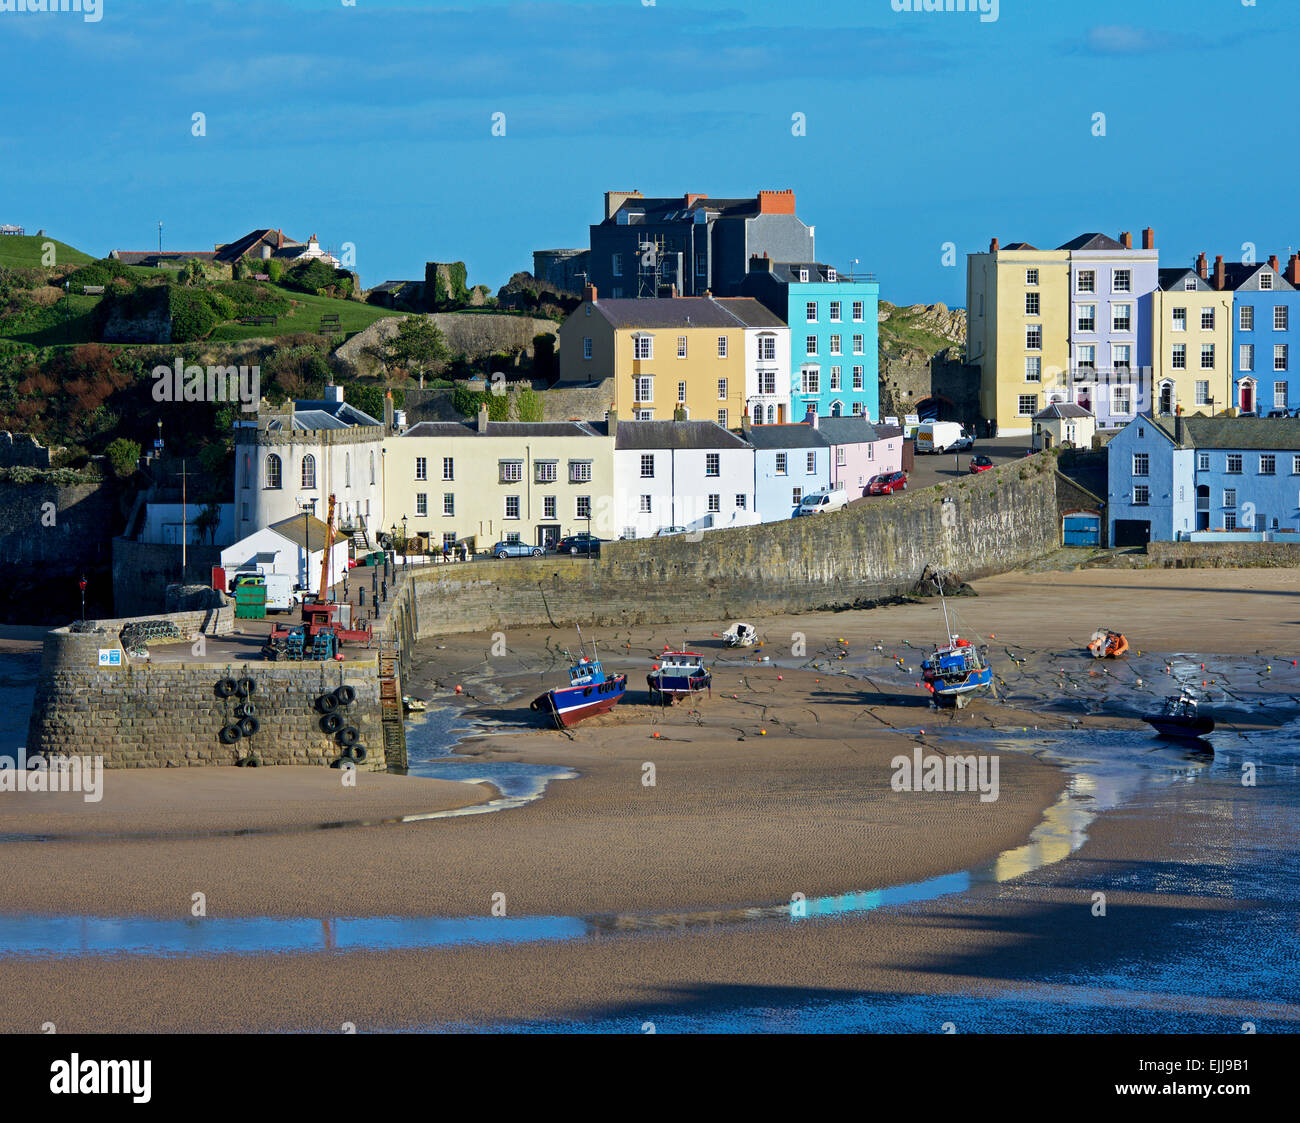 The beach and harbour, at low tide, Tenby, Pembrokeshire, Wales UK - Stock Image